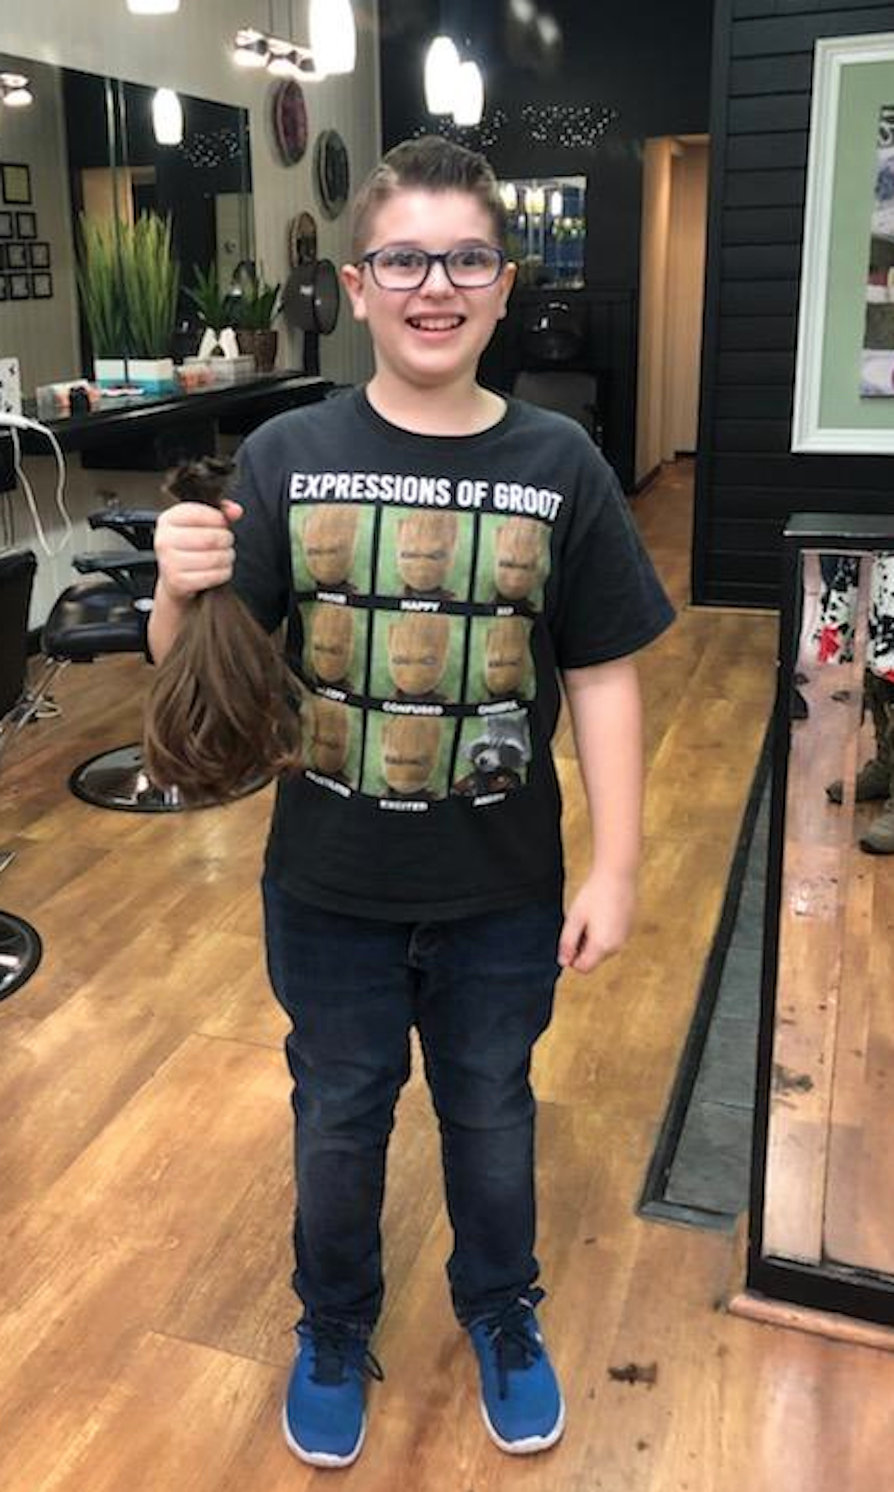 Noah Dzienius, before his most recent haircut. He let his hair grow long to have it cut to help cancer patients.